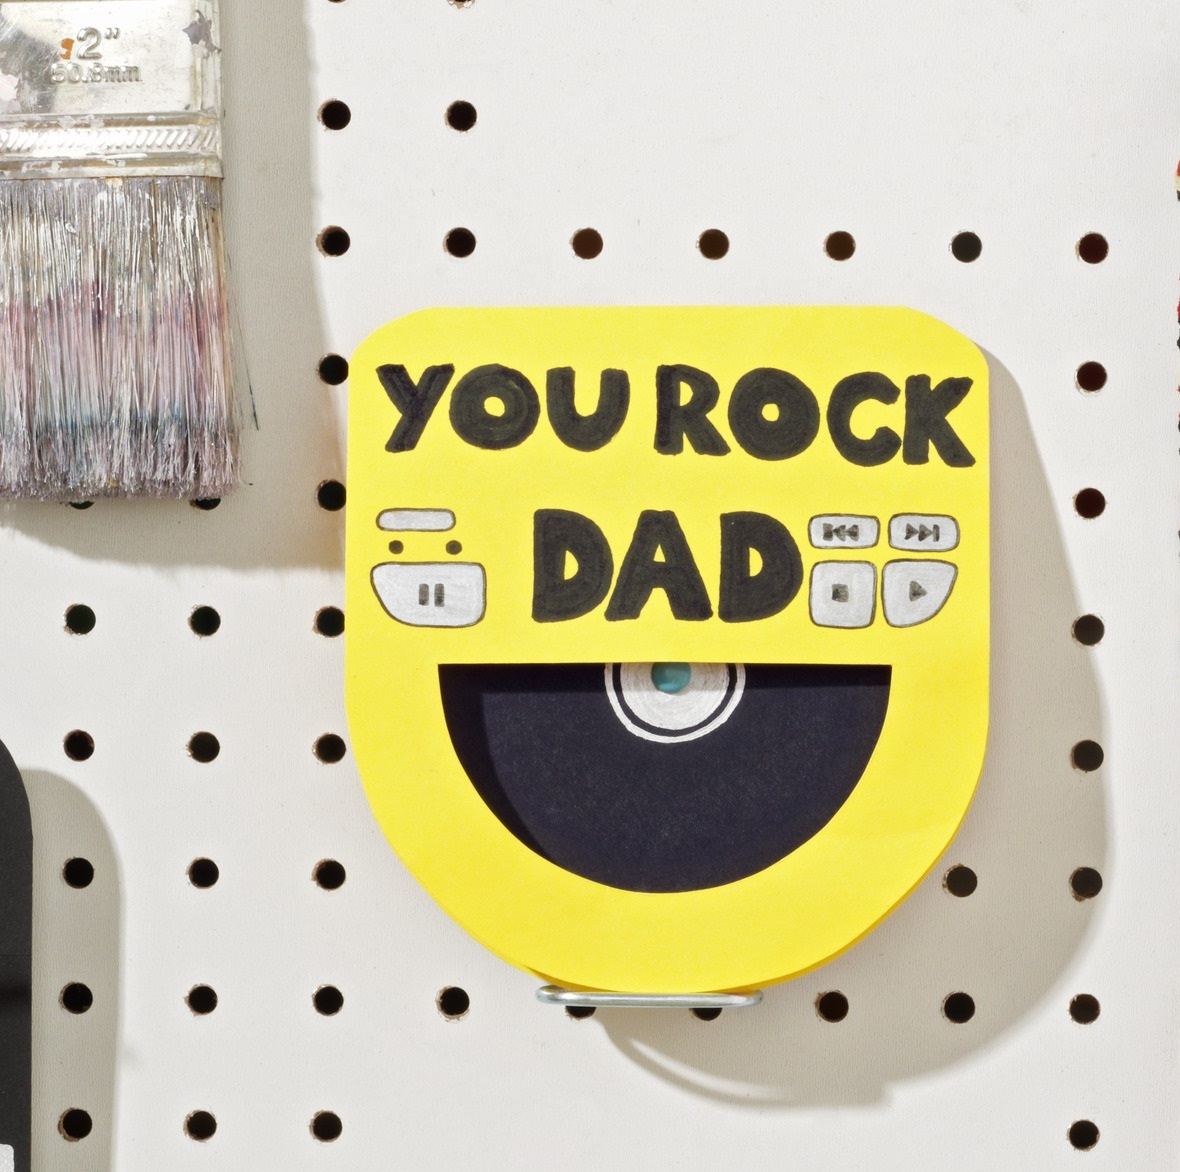 Homemade Card Ideas For Dads Birthday Fathers Day Crafts For Kids 21 Too Cute Gift Ideas For Dad Parents